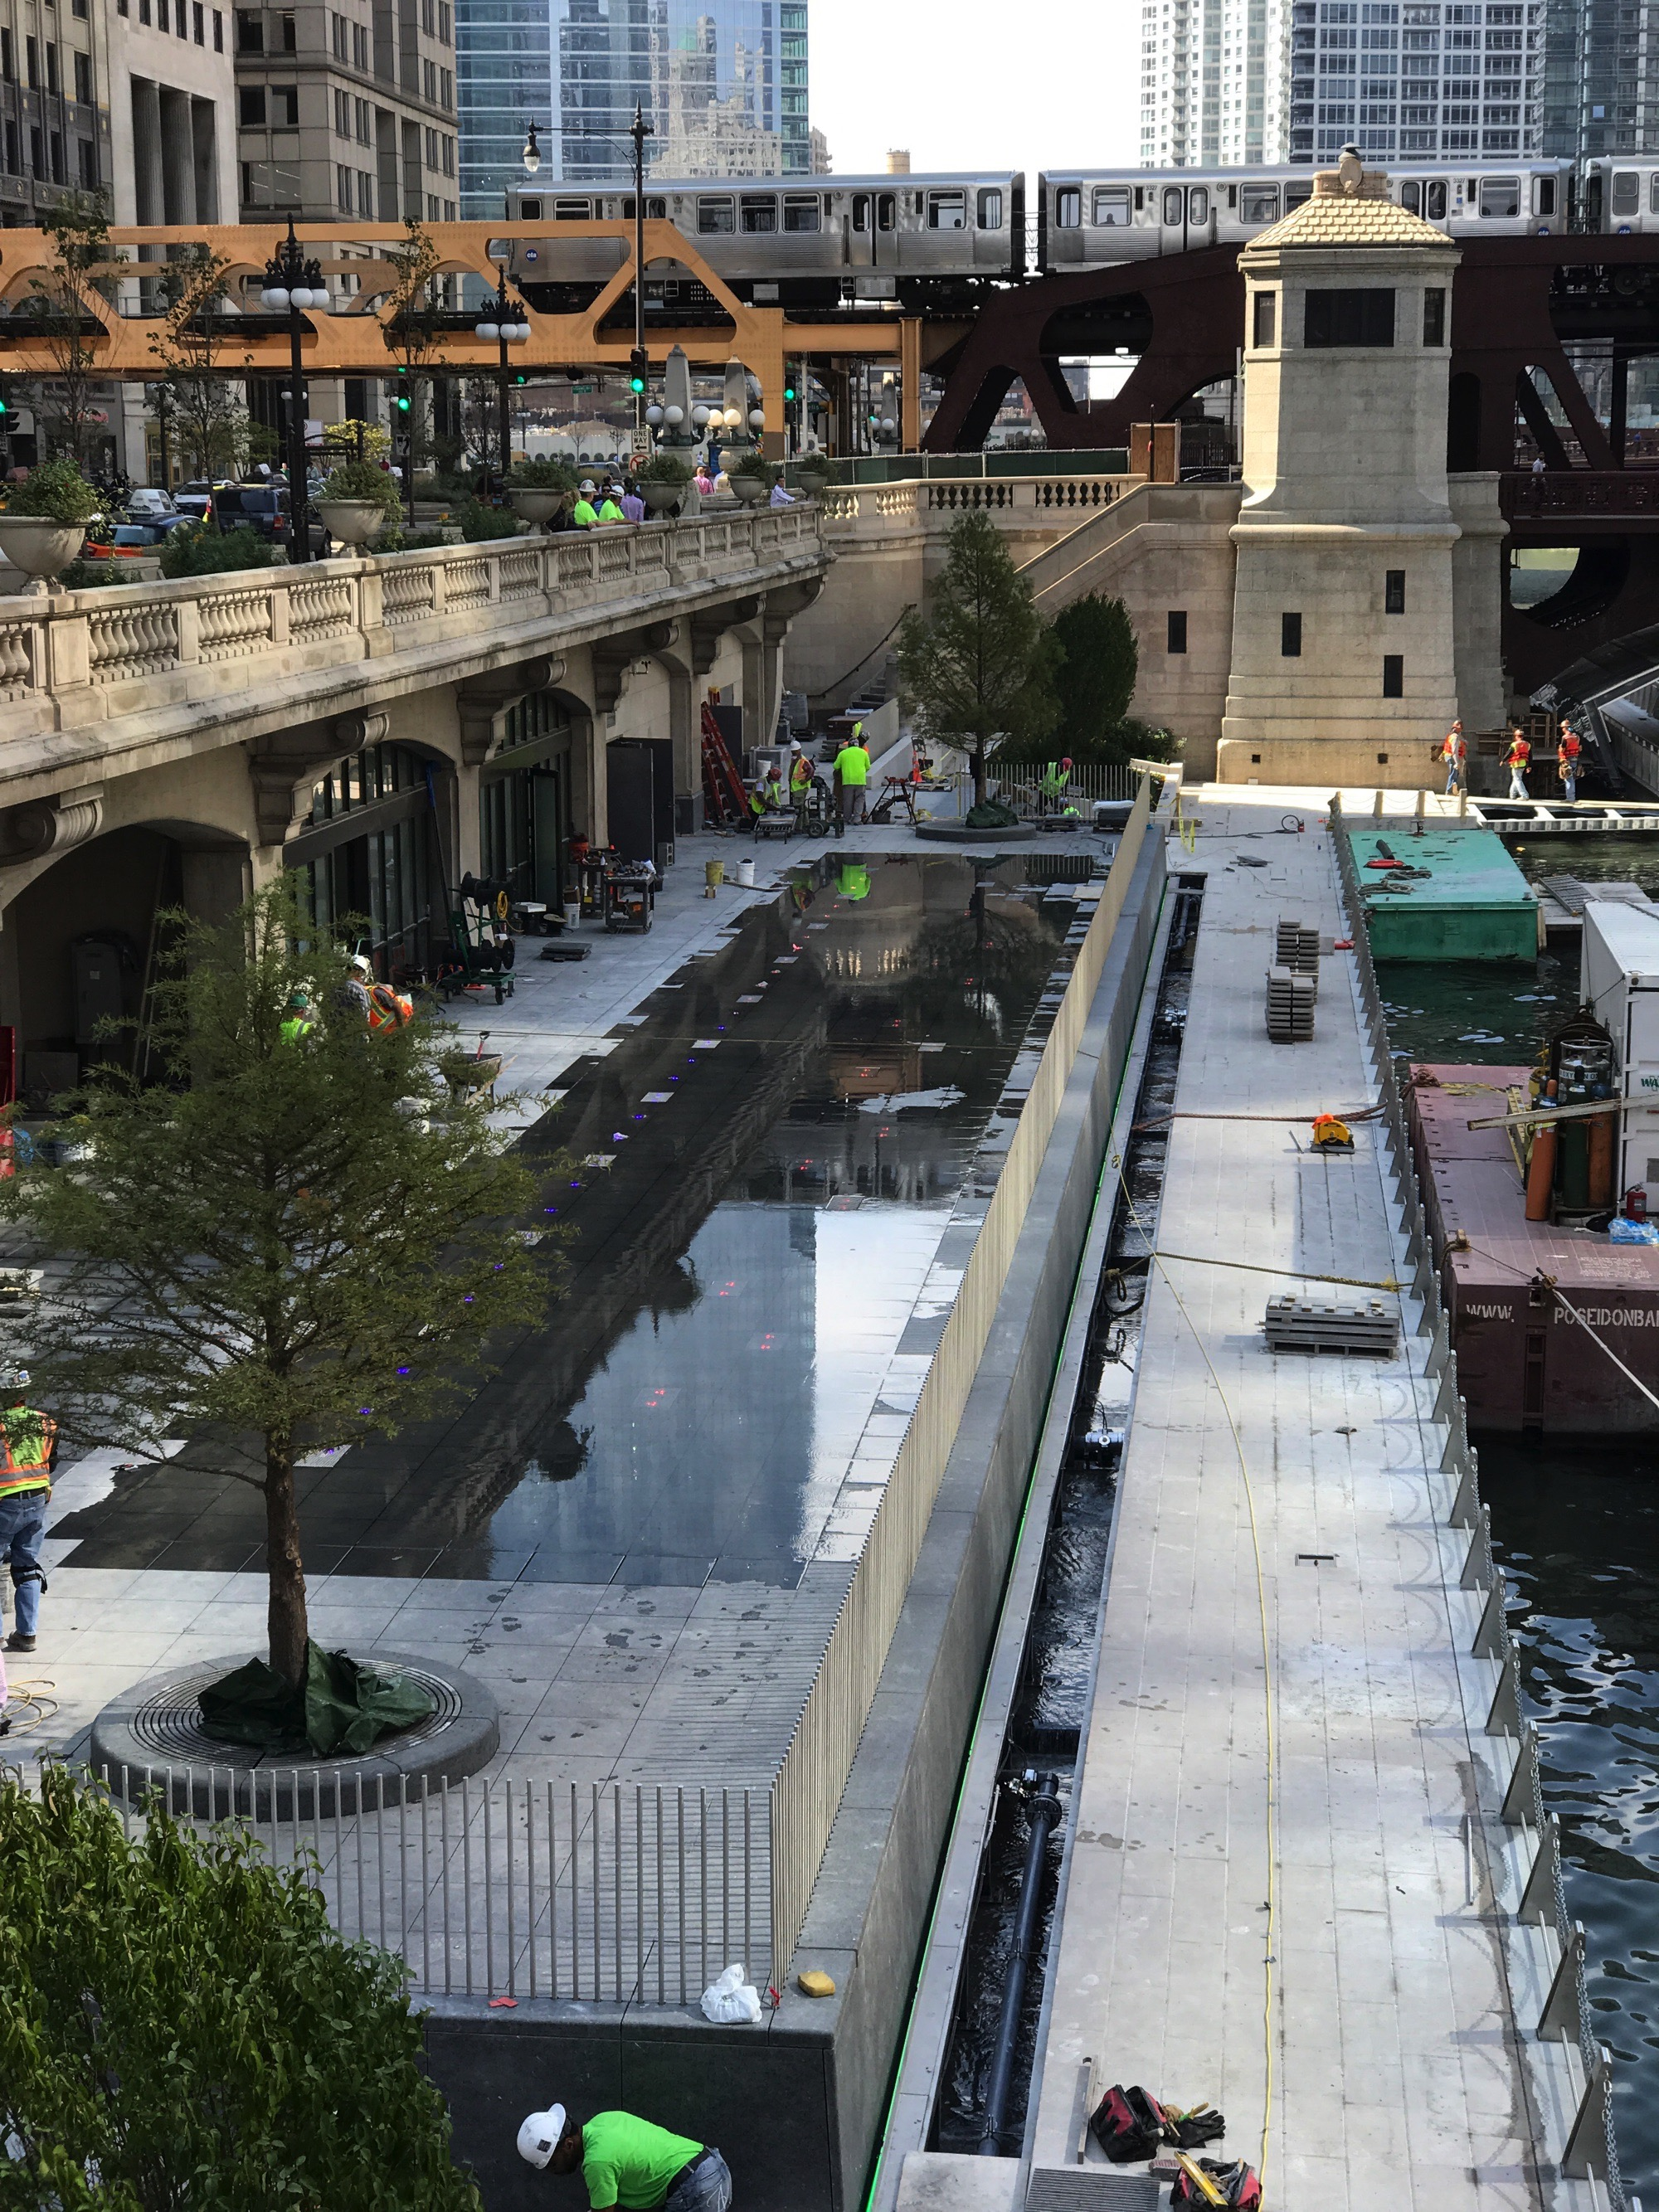 Chicago Riverwalk under construction (Courtesy of Loop Spy DJ)